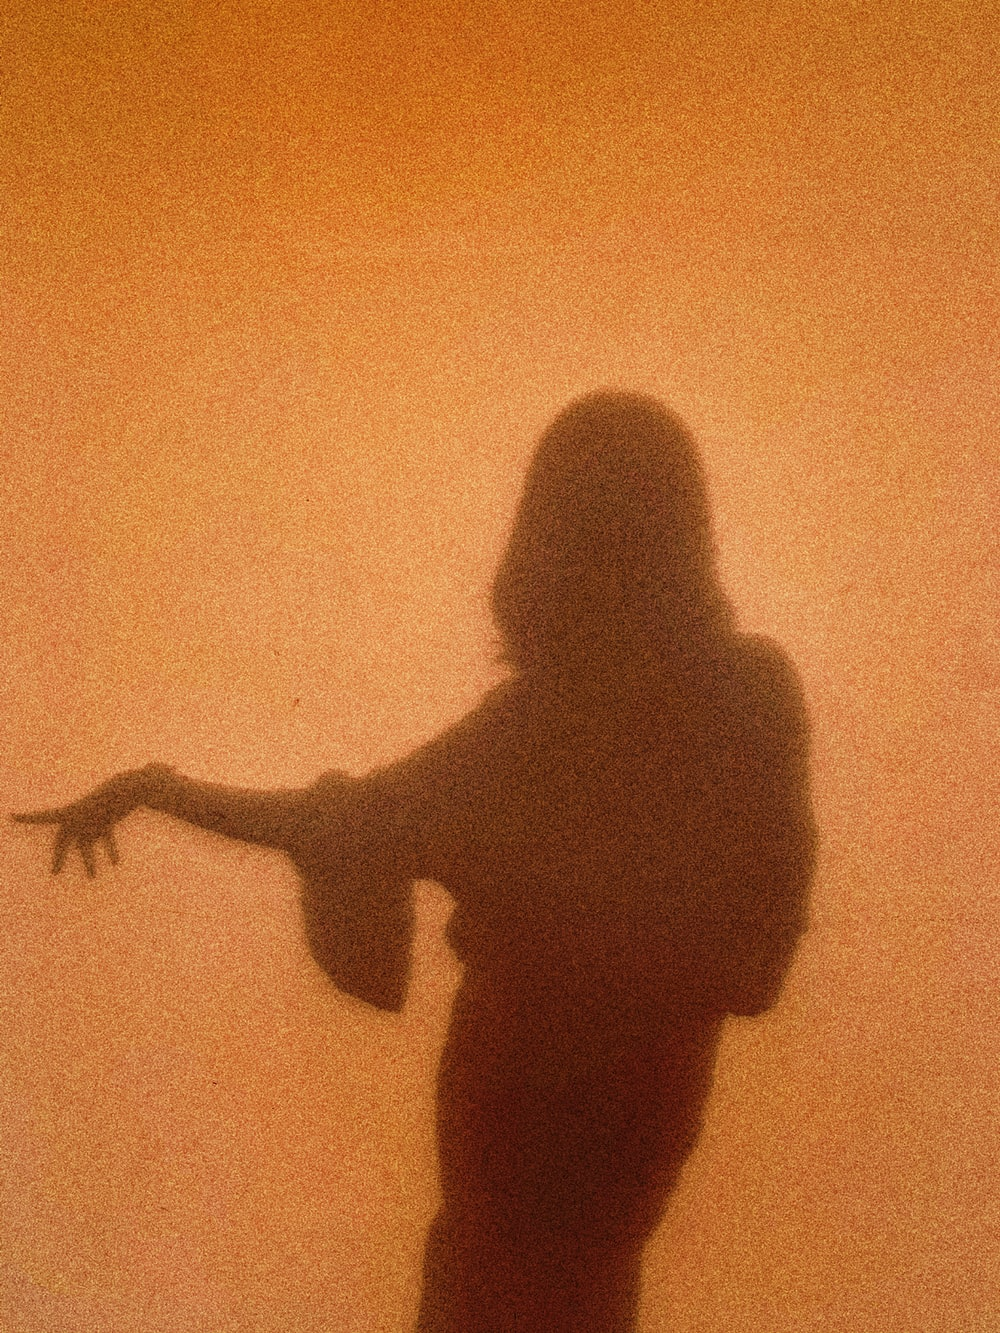 silhouette of woman standing and raising her right hand